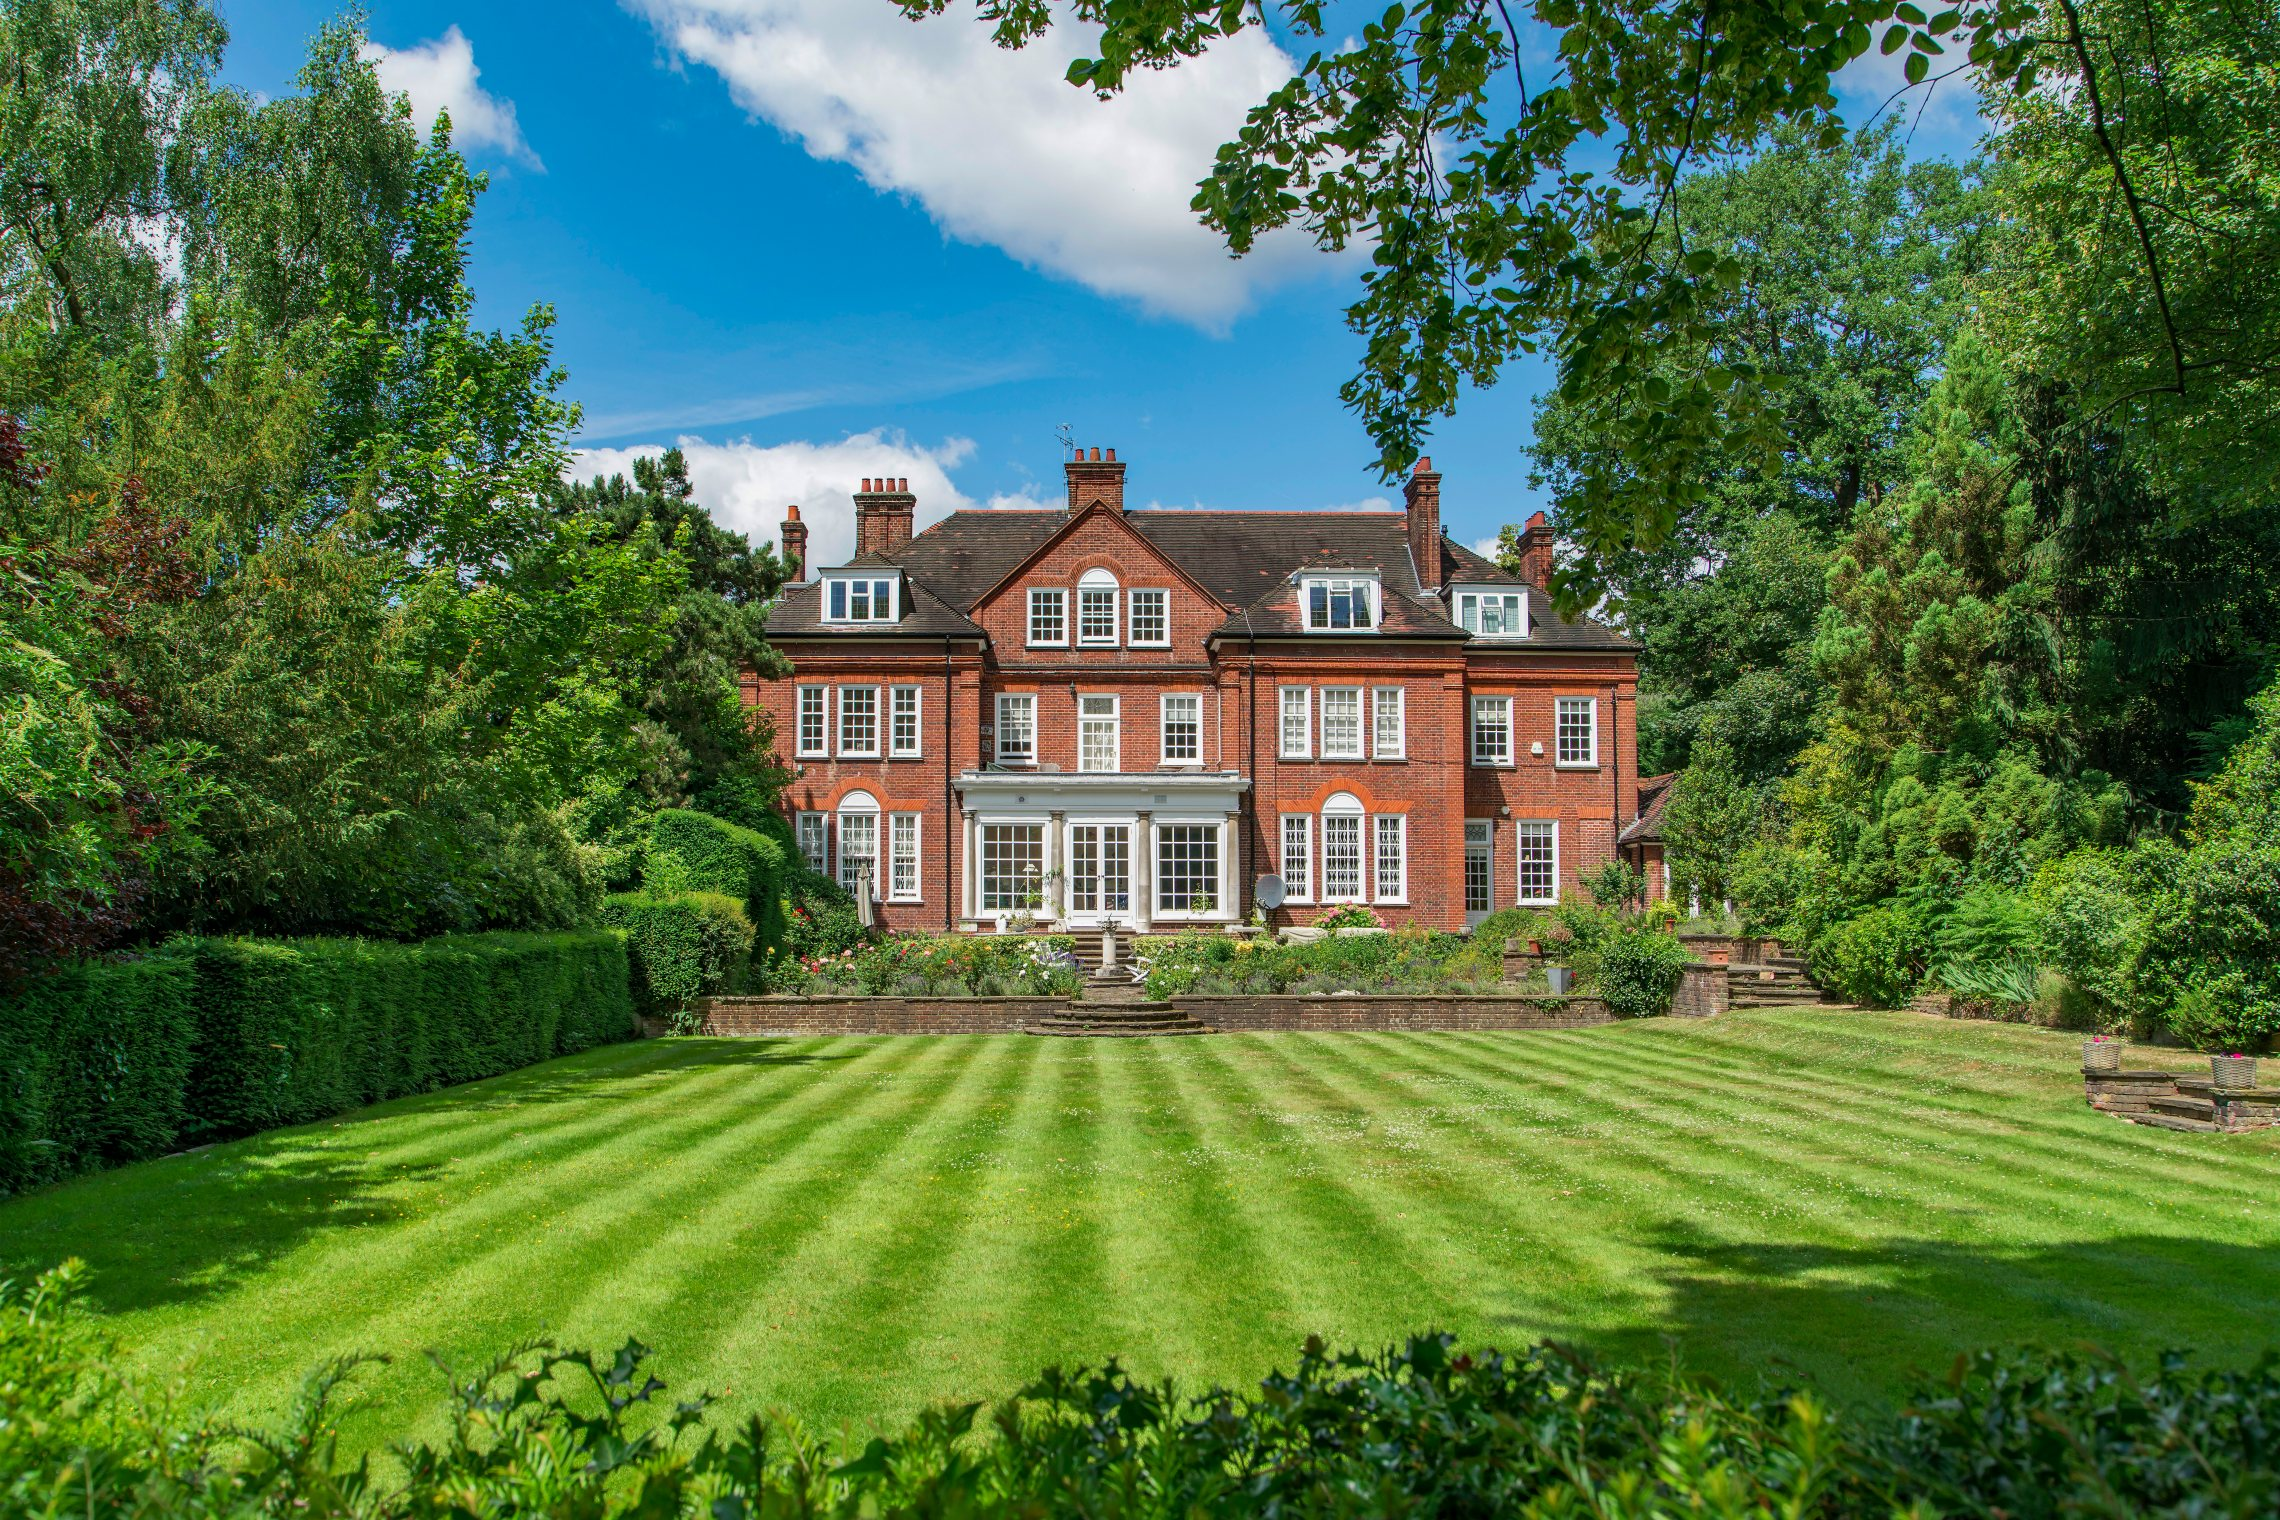 The exterior of a large red brick house and its gardens